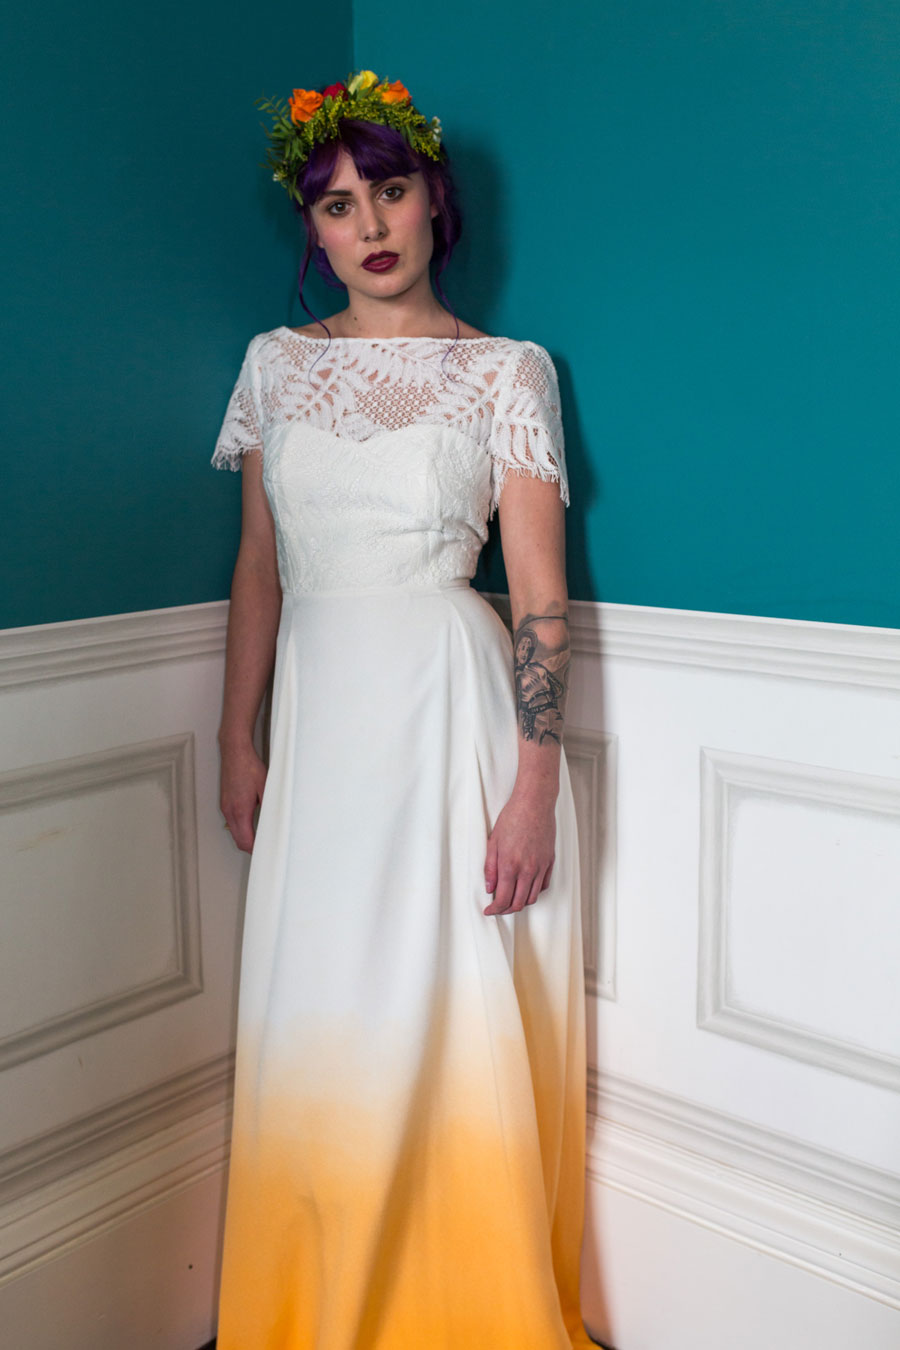 Quirky Wedding Dresses For Non-Traditional Brides- Lucy Can't Dance0037